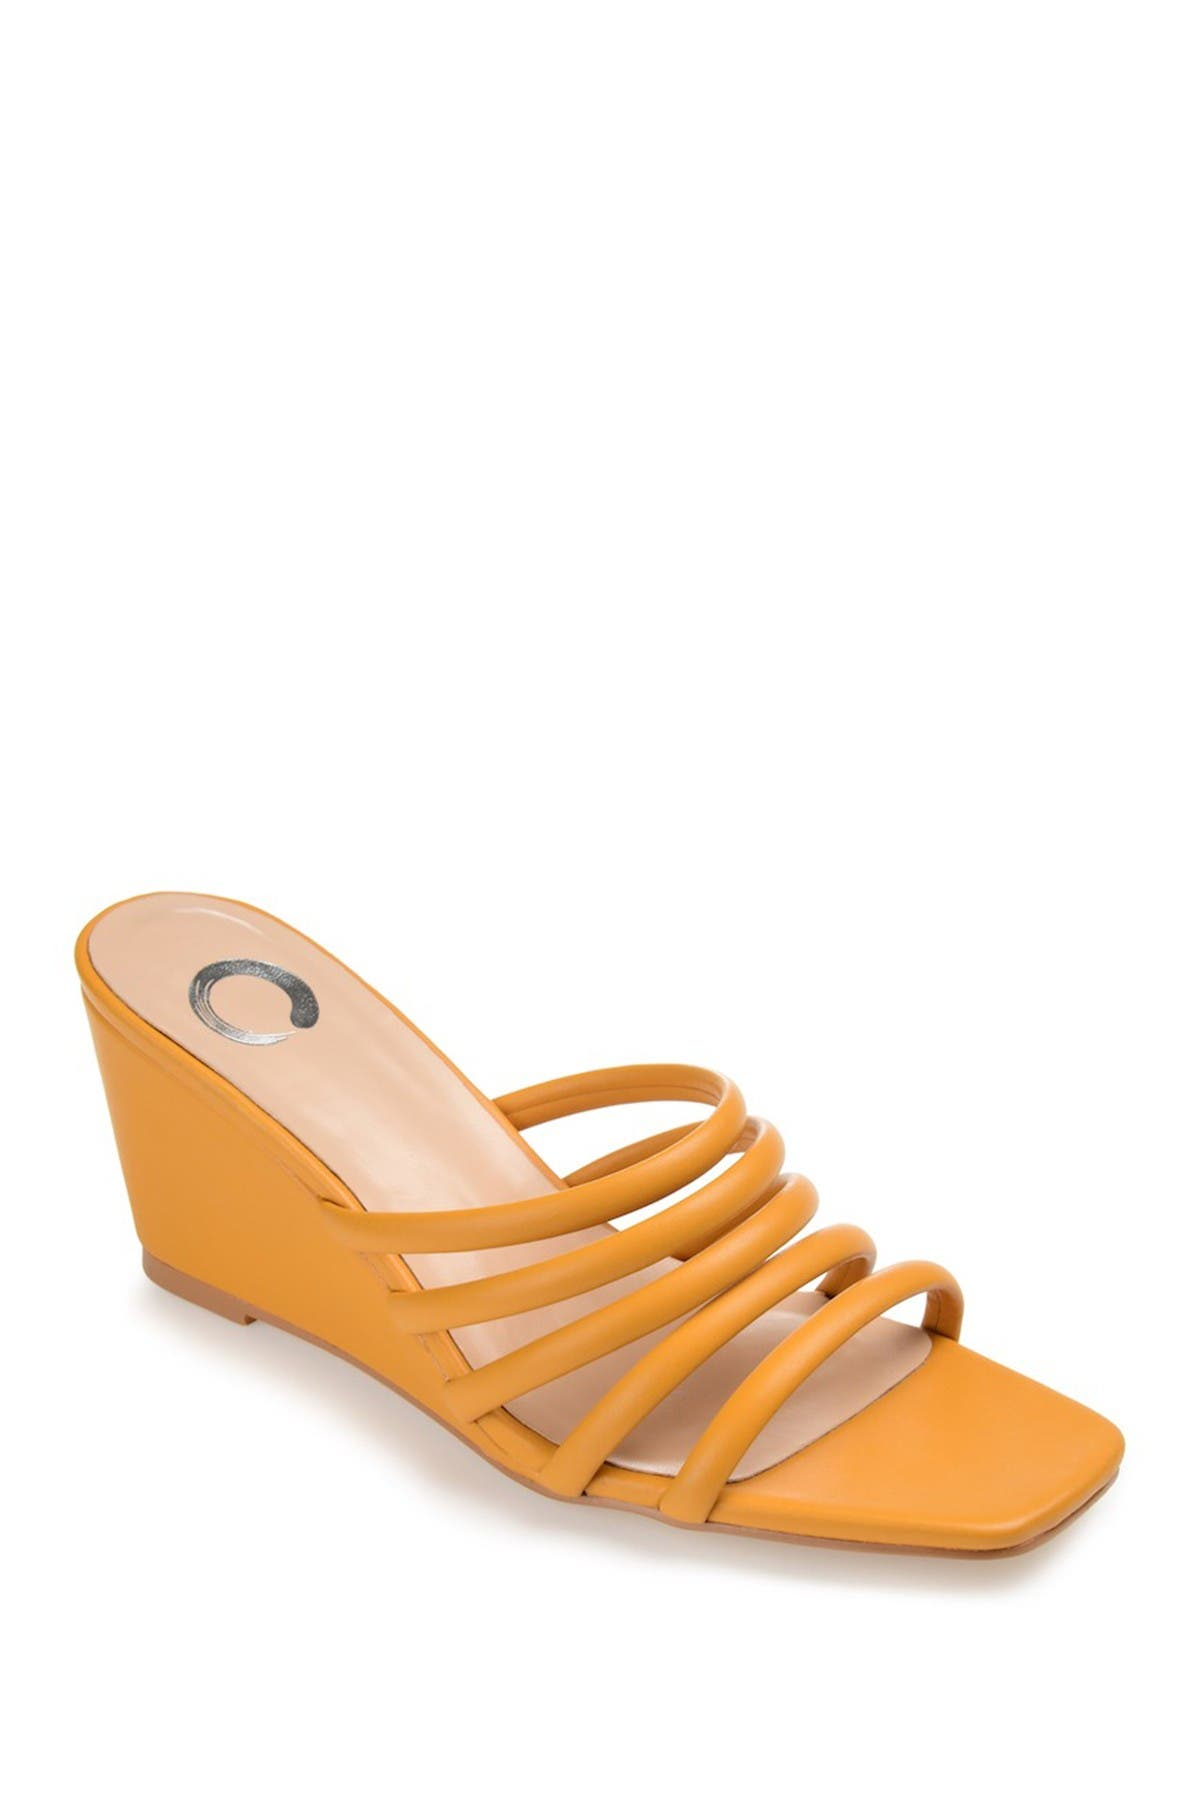 Journee Collection Wedges RIZIE STRAPPY WEDGE SANDAL